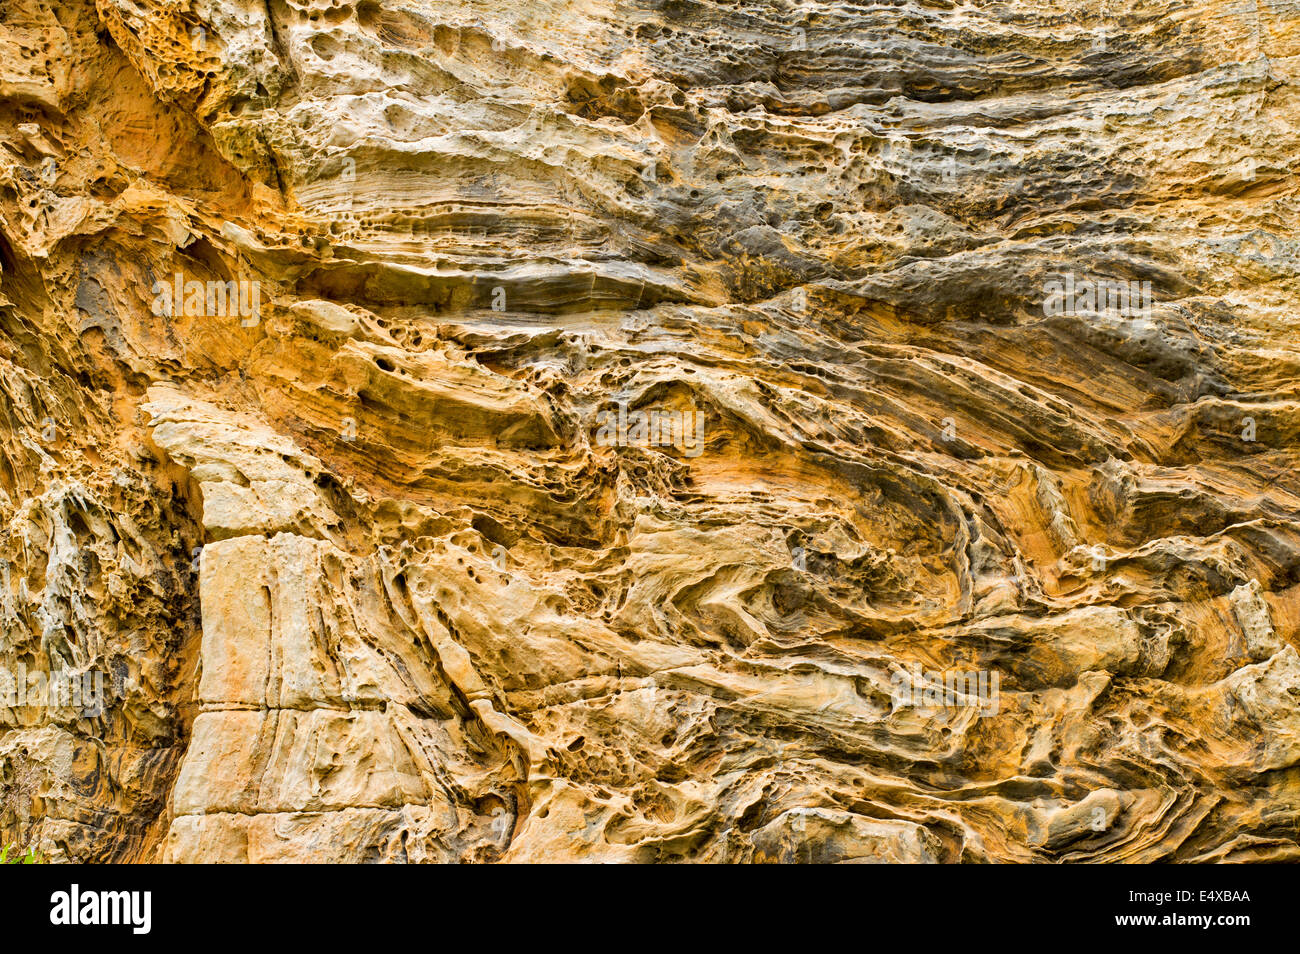 SANDSTONE WEATHERED AND ERODED BY WIND AND SEA NEAR  HOPEMAN ON THE MORAY COAST SCOTLAND - Stock Image